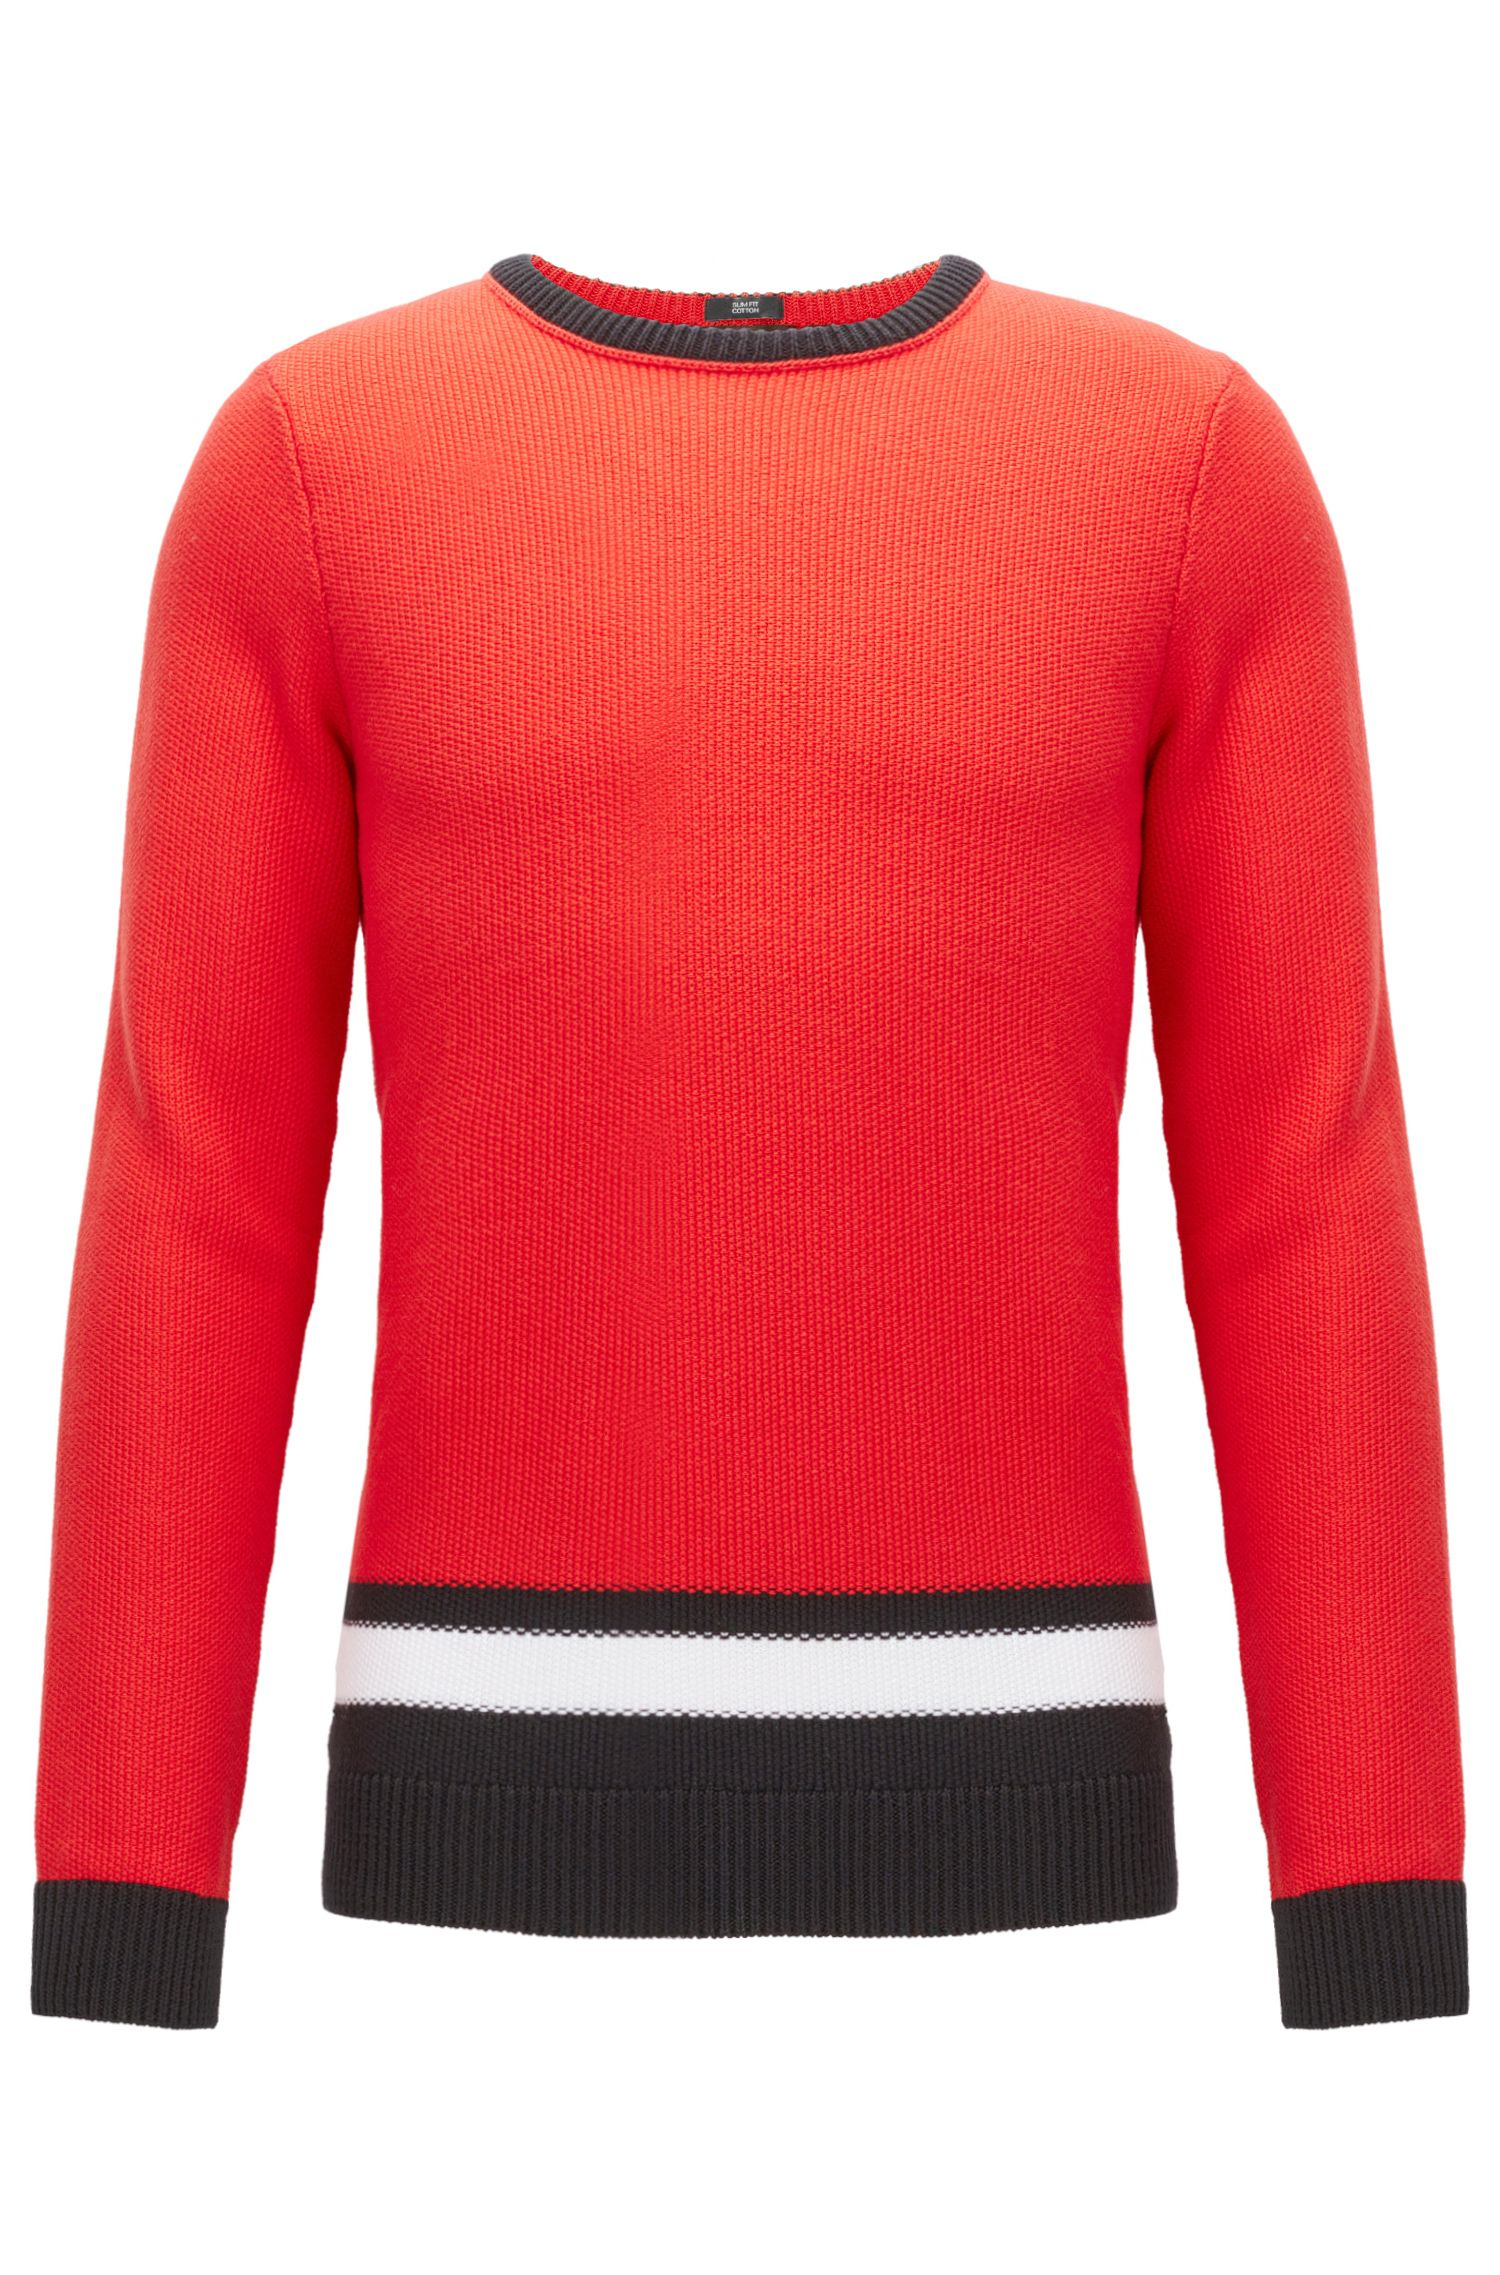 Colorblocked Cotton Sweater | Pagino